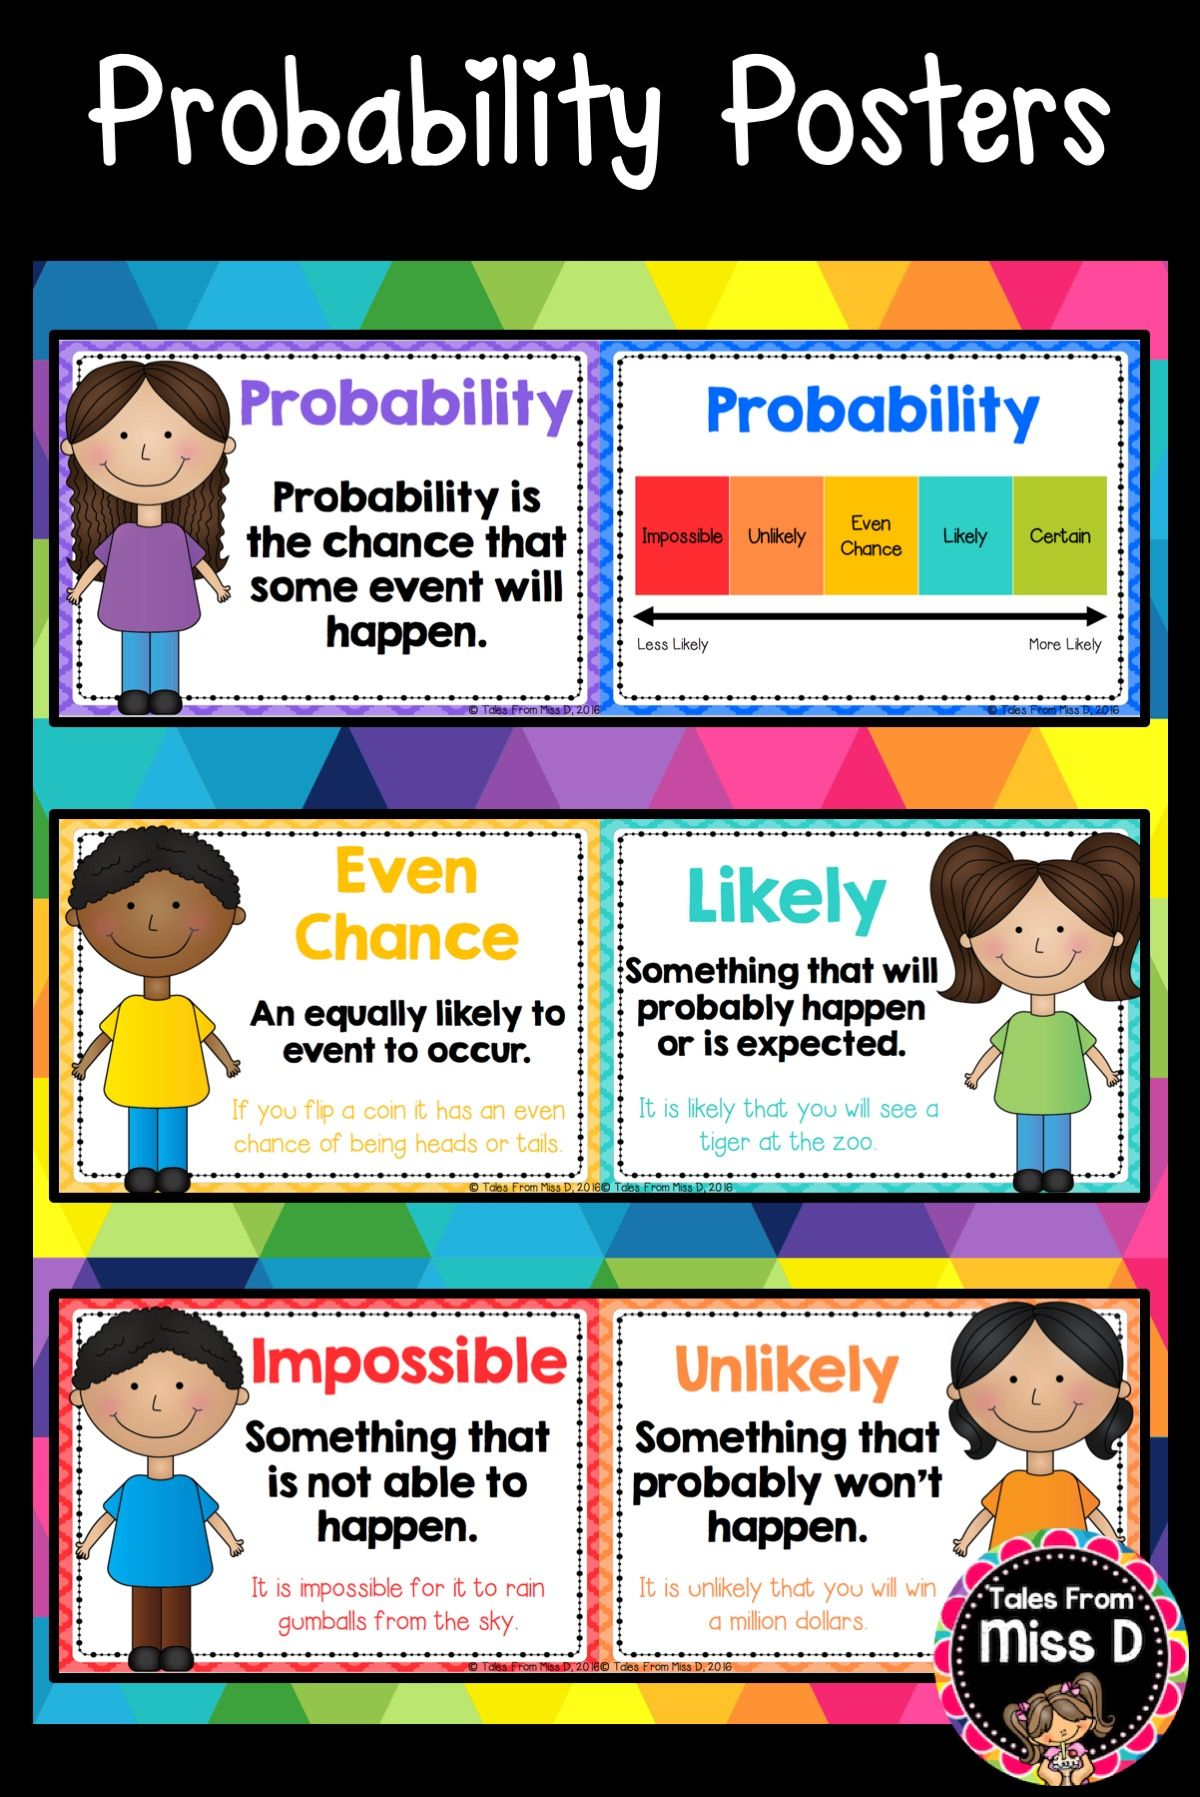 Probability Posters Math: Probability & Statistics Pinterest Math, Math poster and Teaching